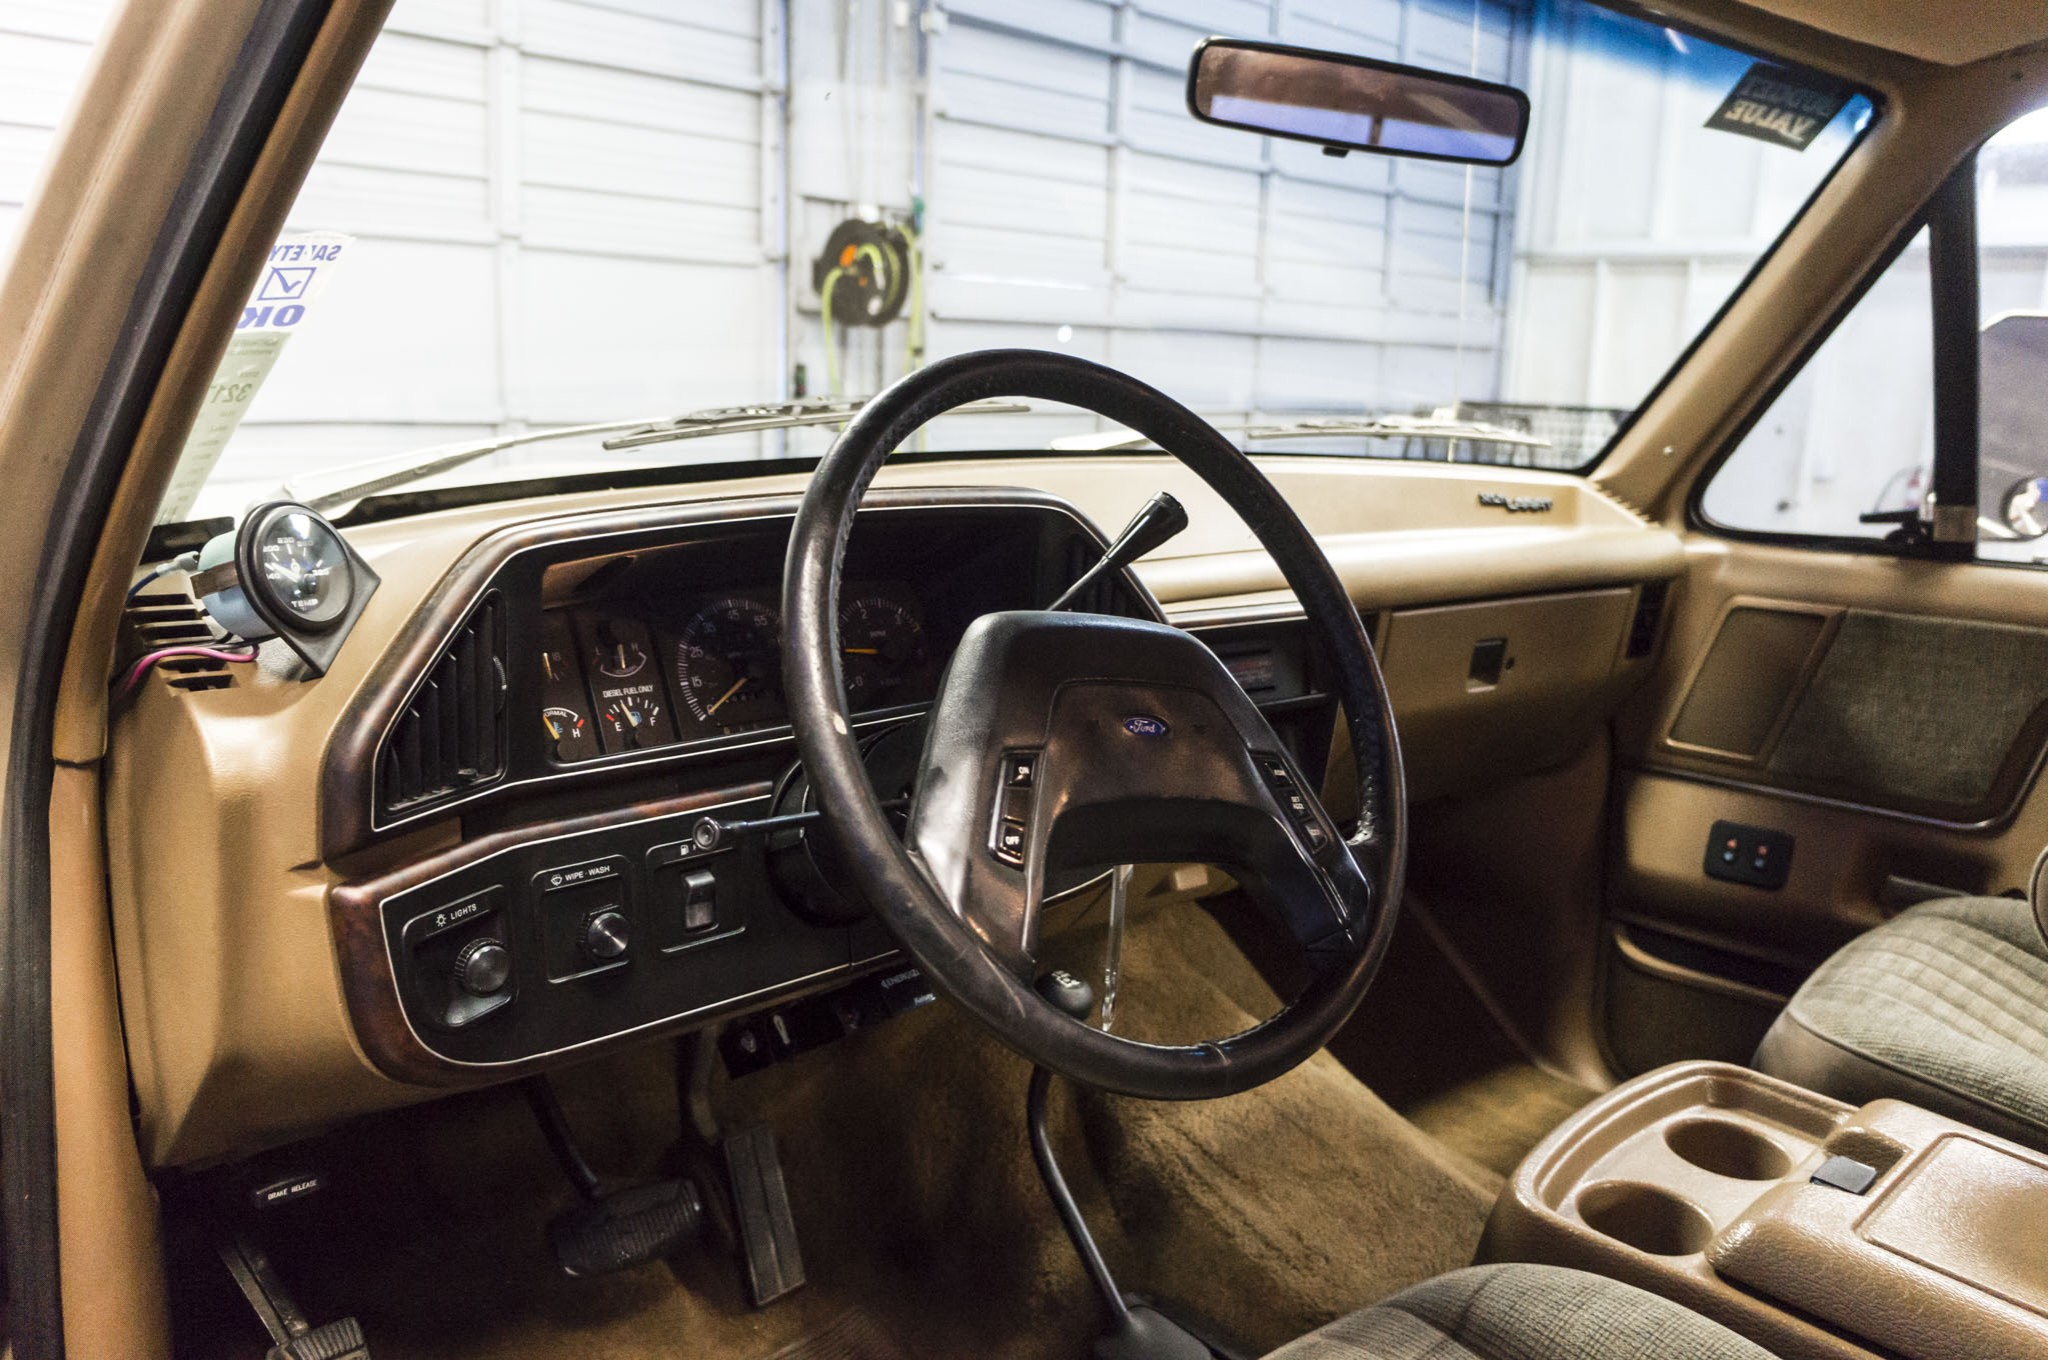 Used 1990 Ford F-250 4x4 Diesel Truck For Sale - 32177B